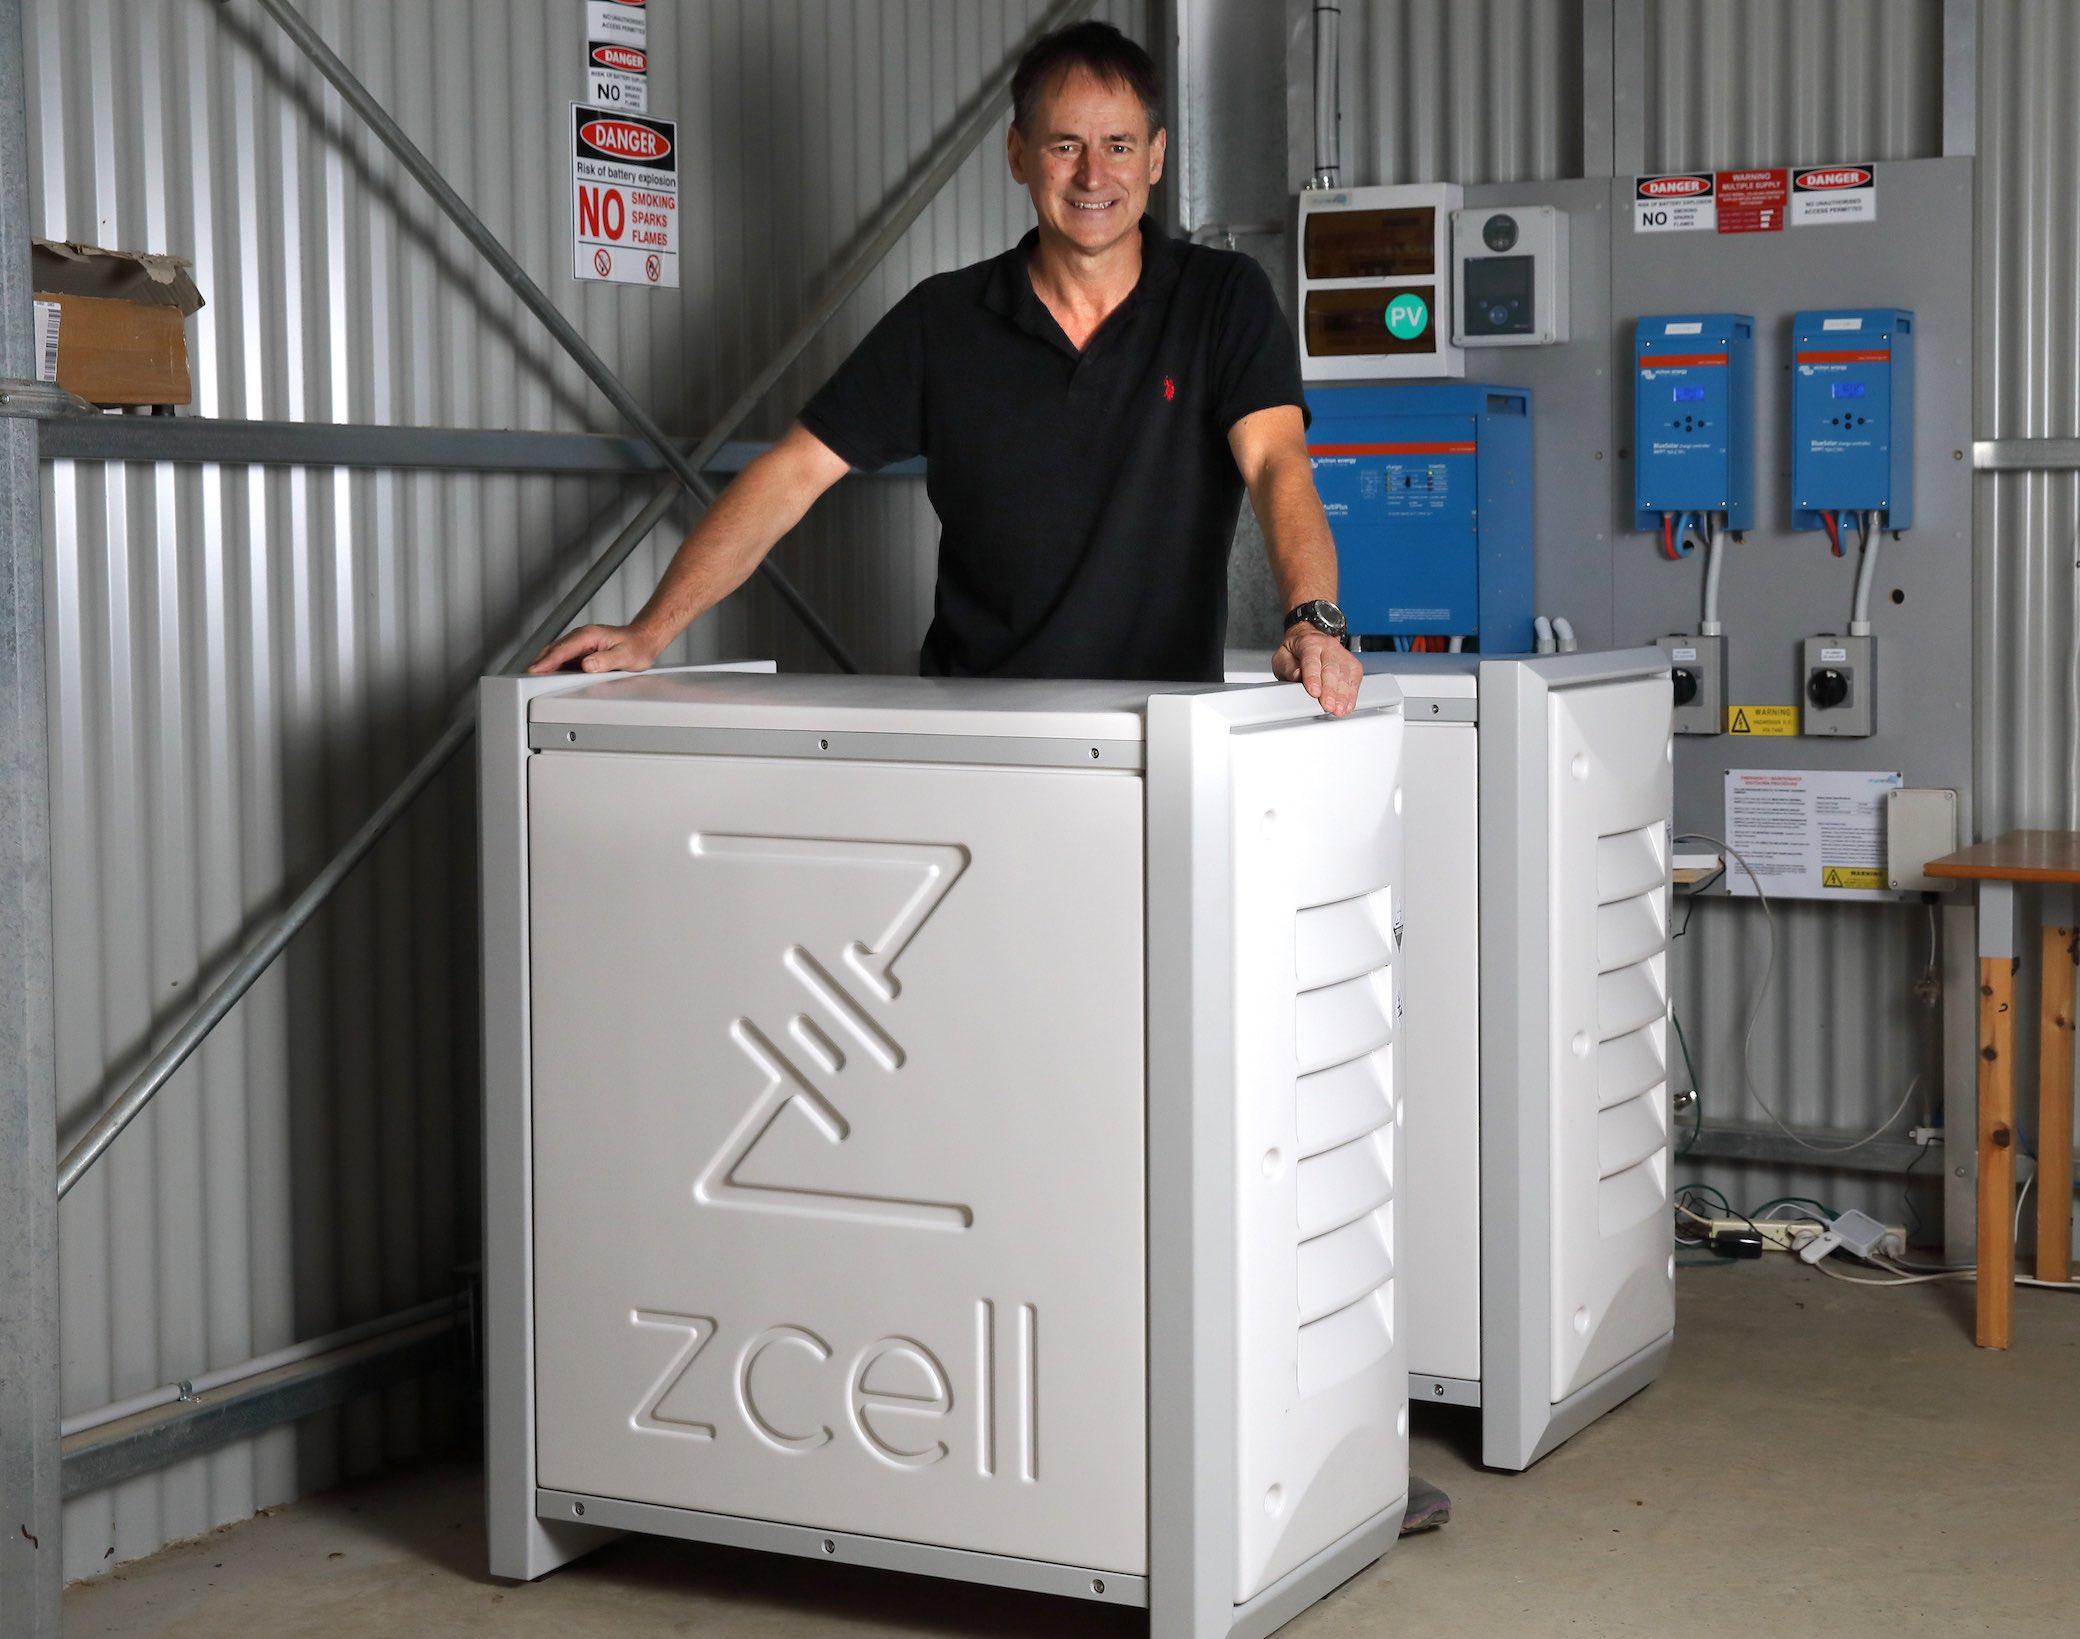 Alan Noble with his ZCell batteries